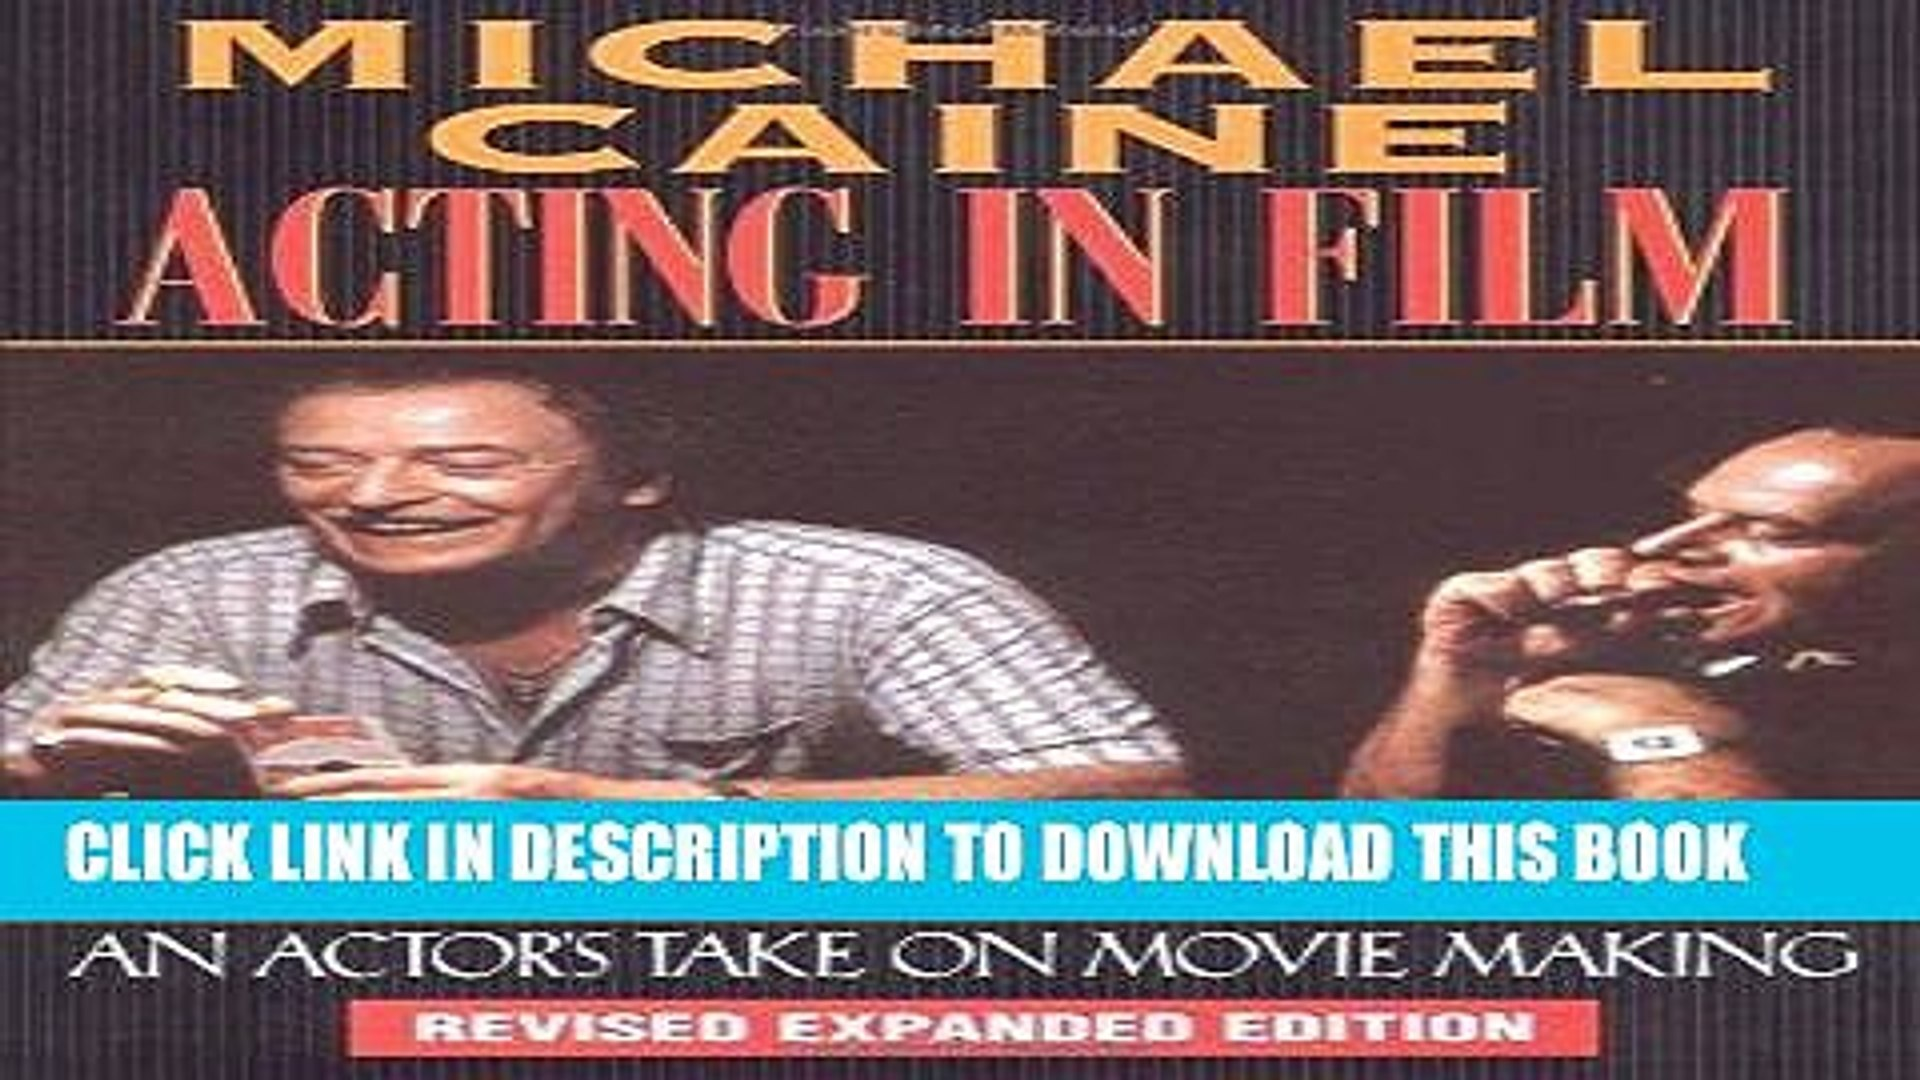 Read Now Michael Caine - Acting in Film: An Actor s Take on Movie Making (The Applause Acting